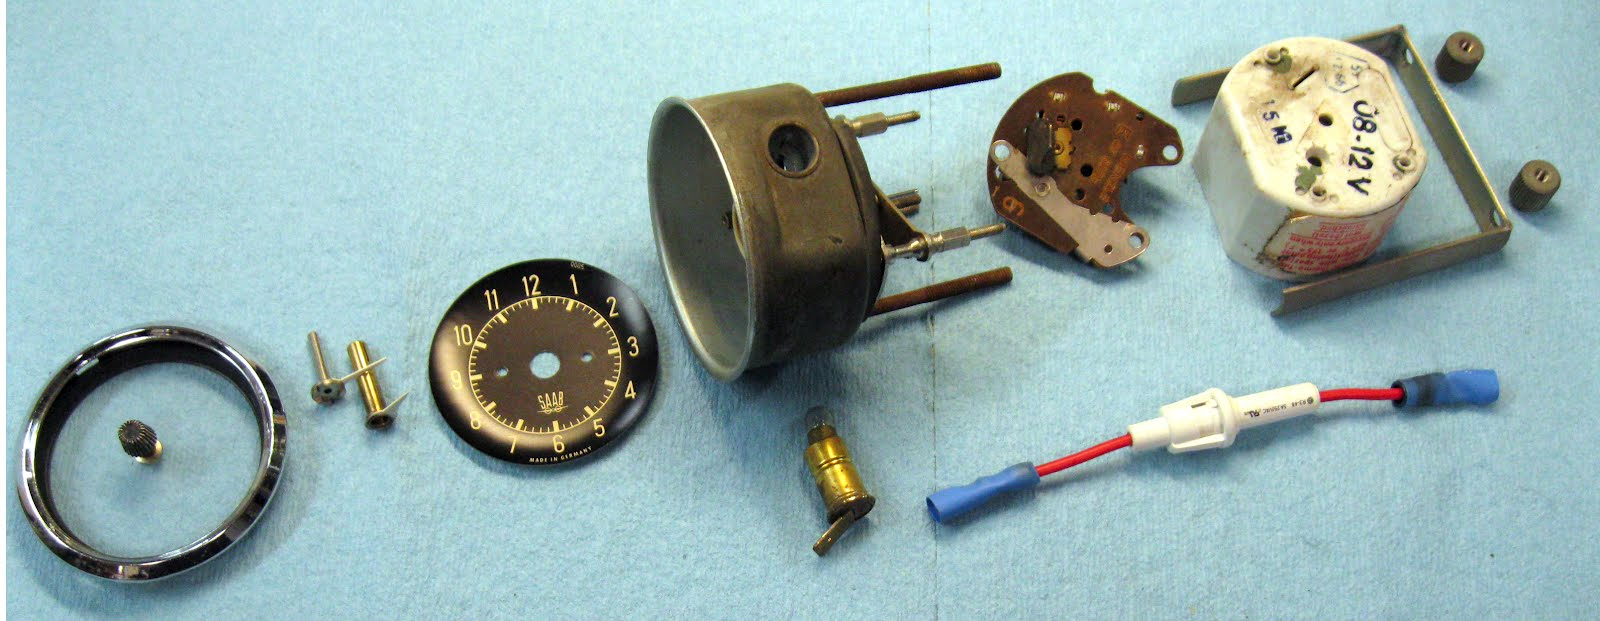 saab journal 2012 this shows the parts of a vdo clock from left to right the chrome ring a retainer ring and the plastic glass the time changing knob